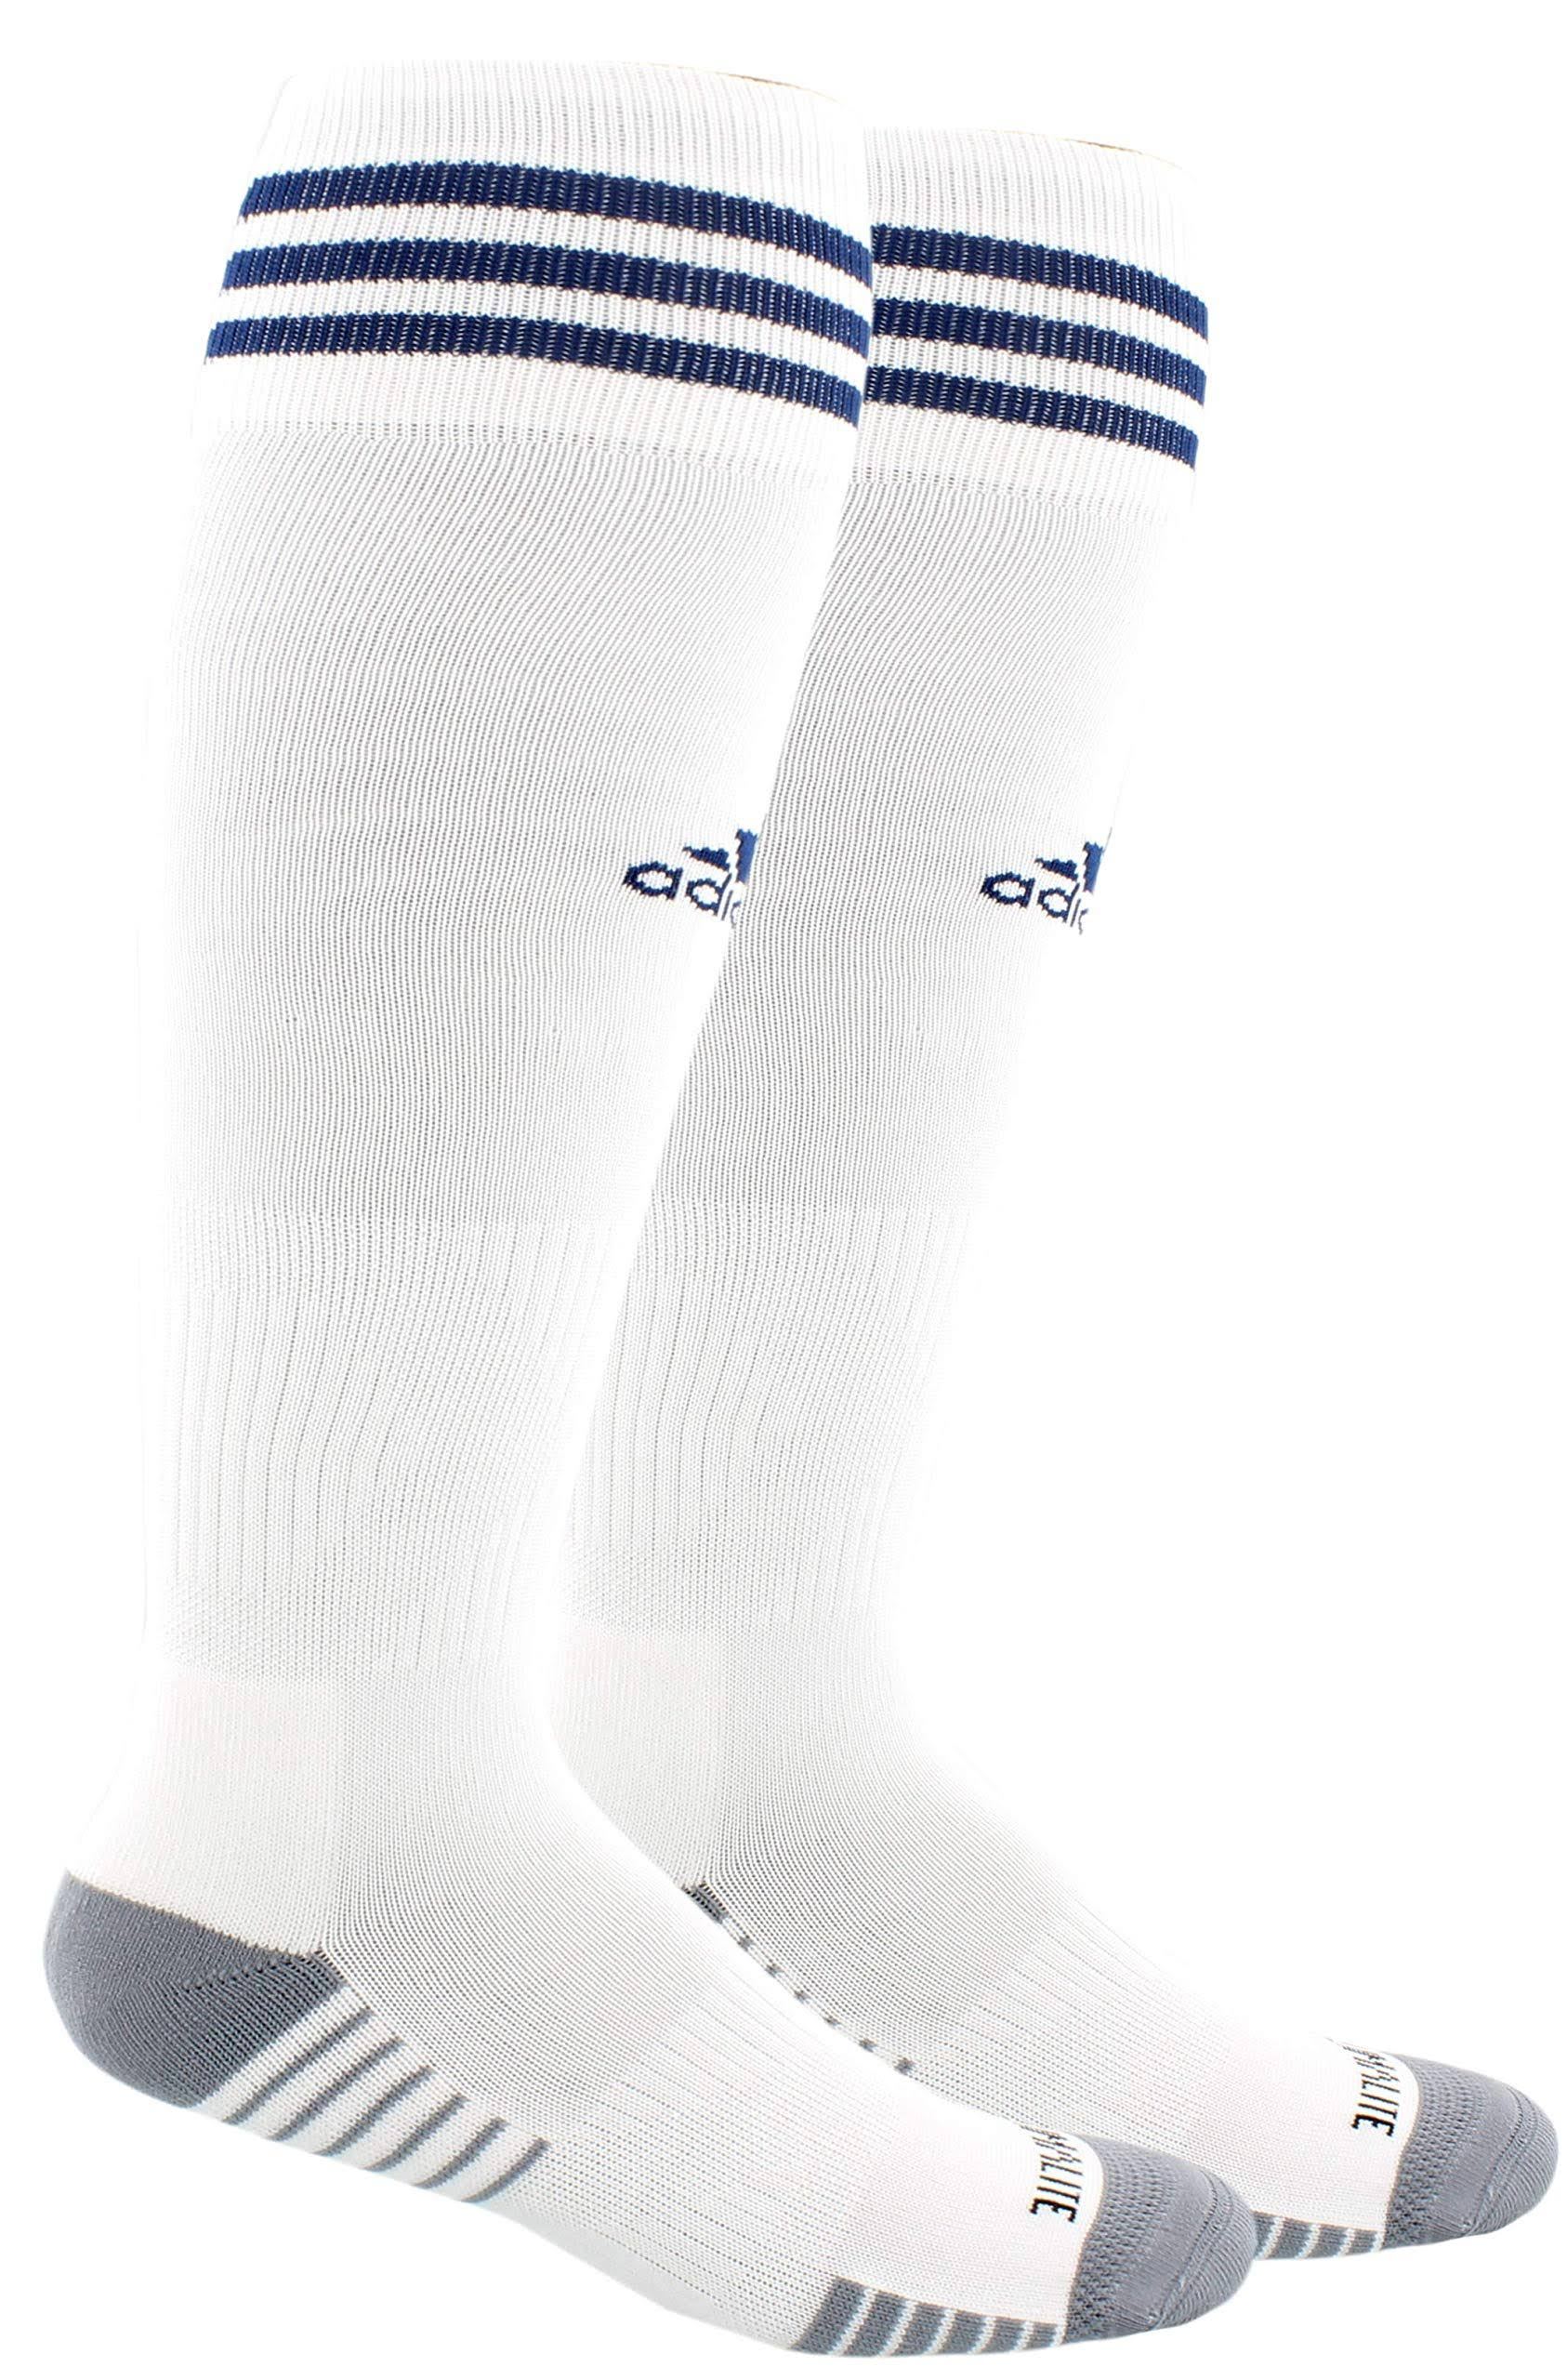 Adidas Copa Zone Cushion IV Socks - White/Navy - L